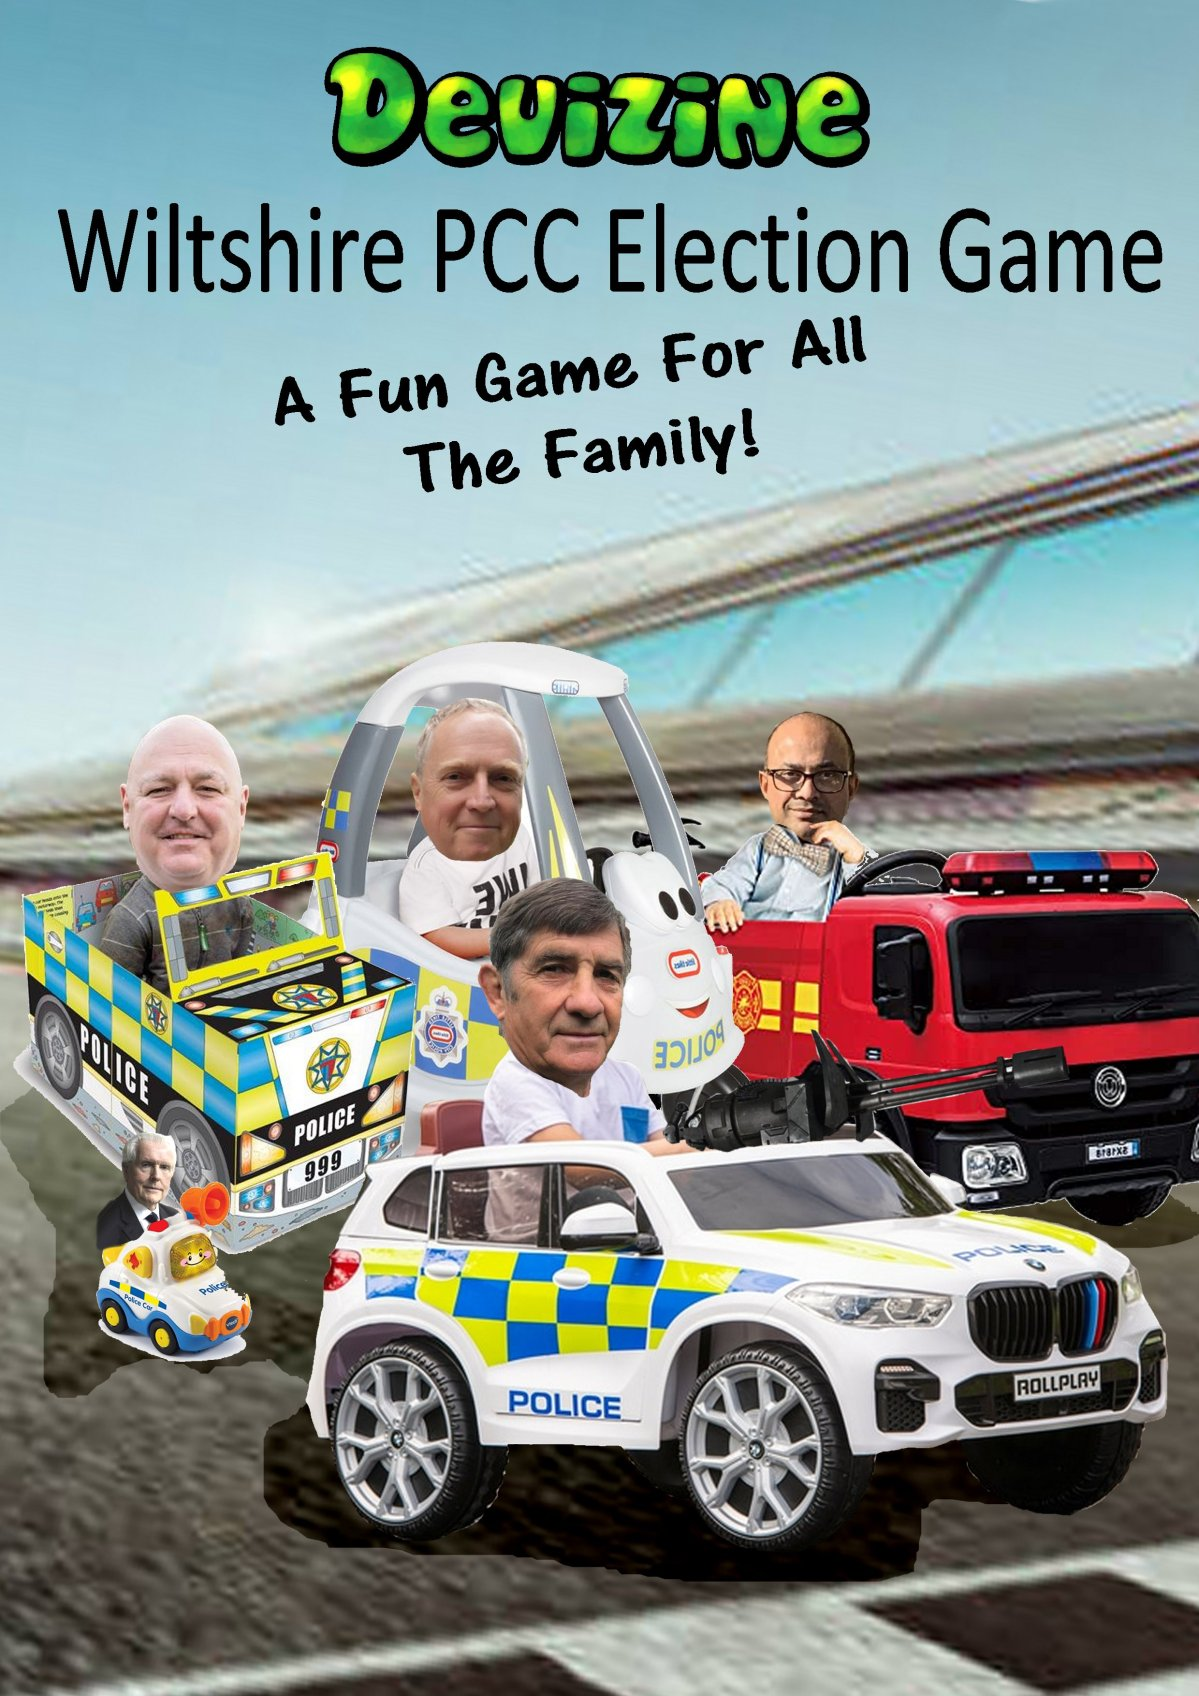 Play the Wiltshire PCC Game; Fun for All theFamily!